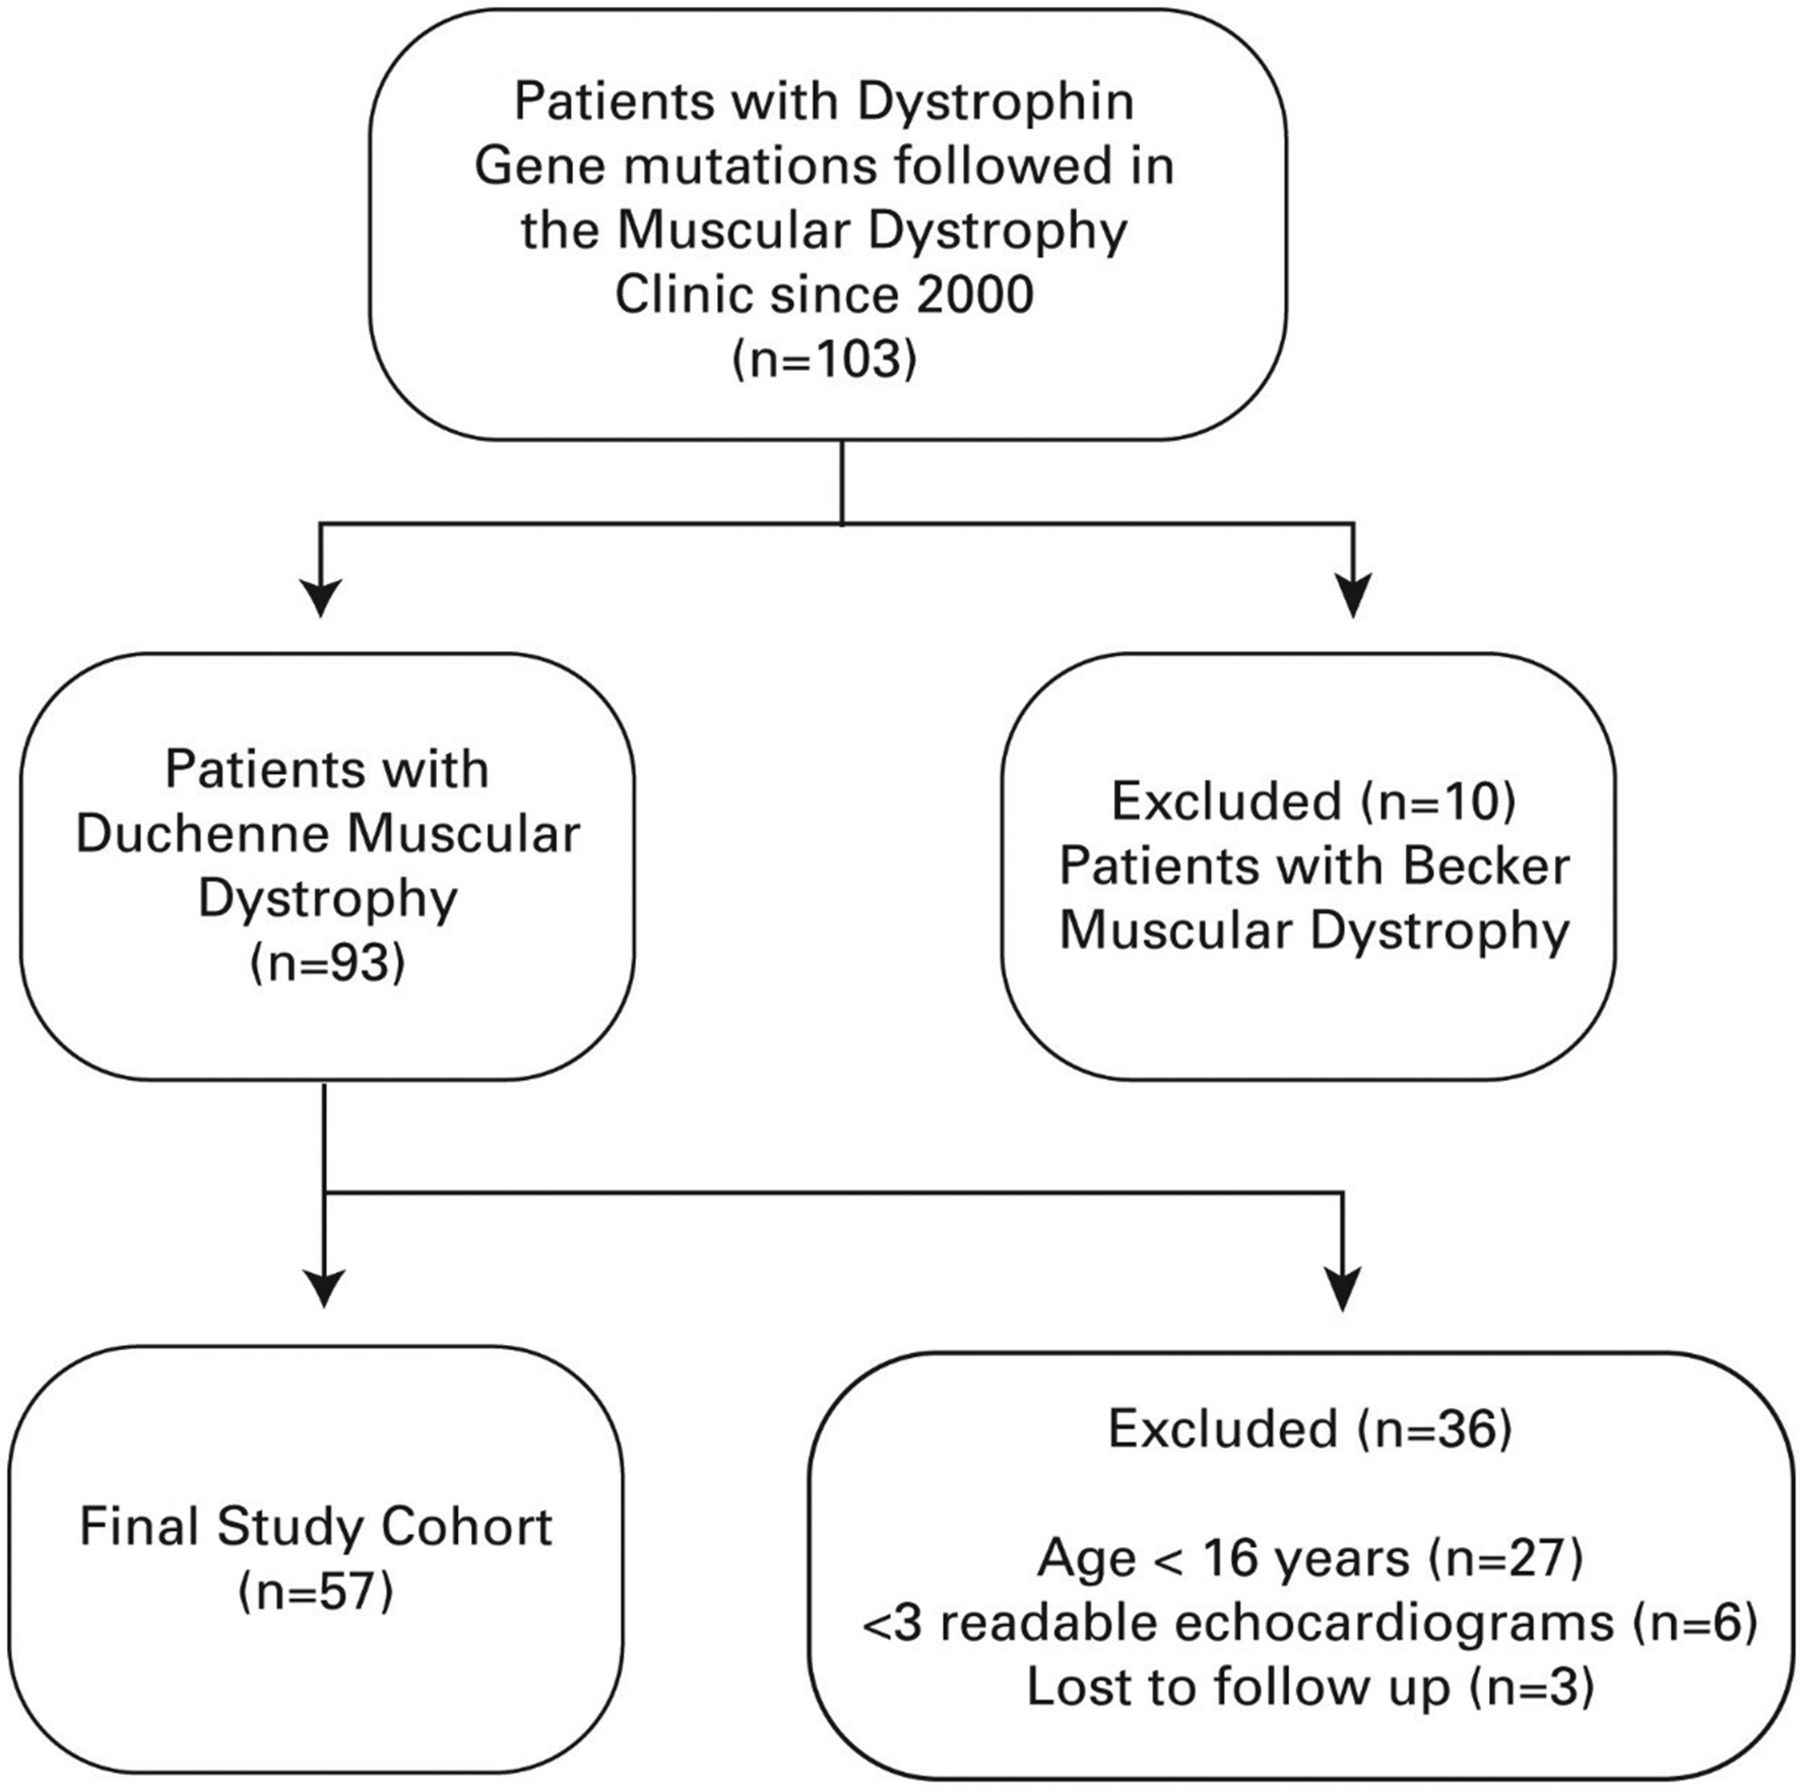 Progressive left ventricular dysfunction and long-term